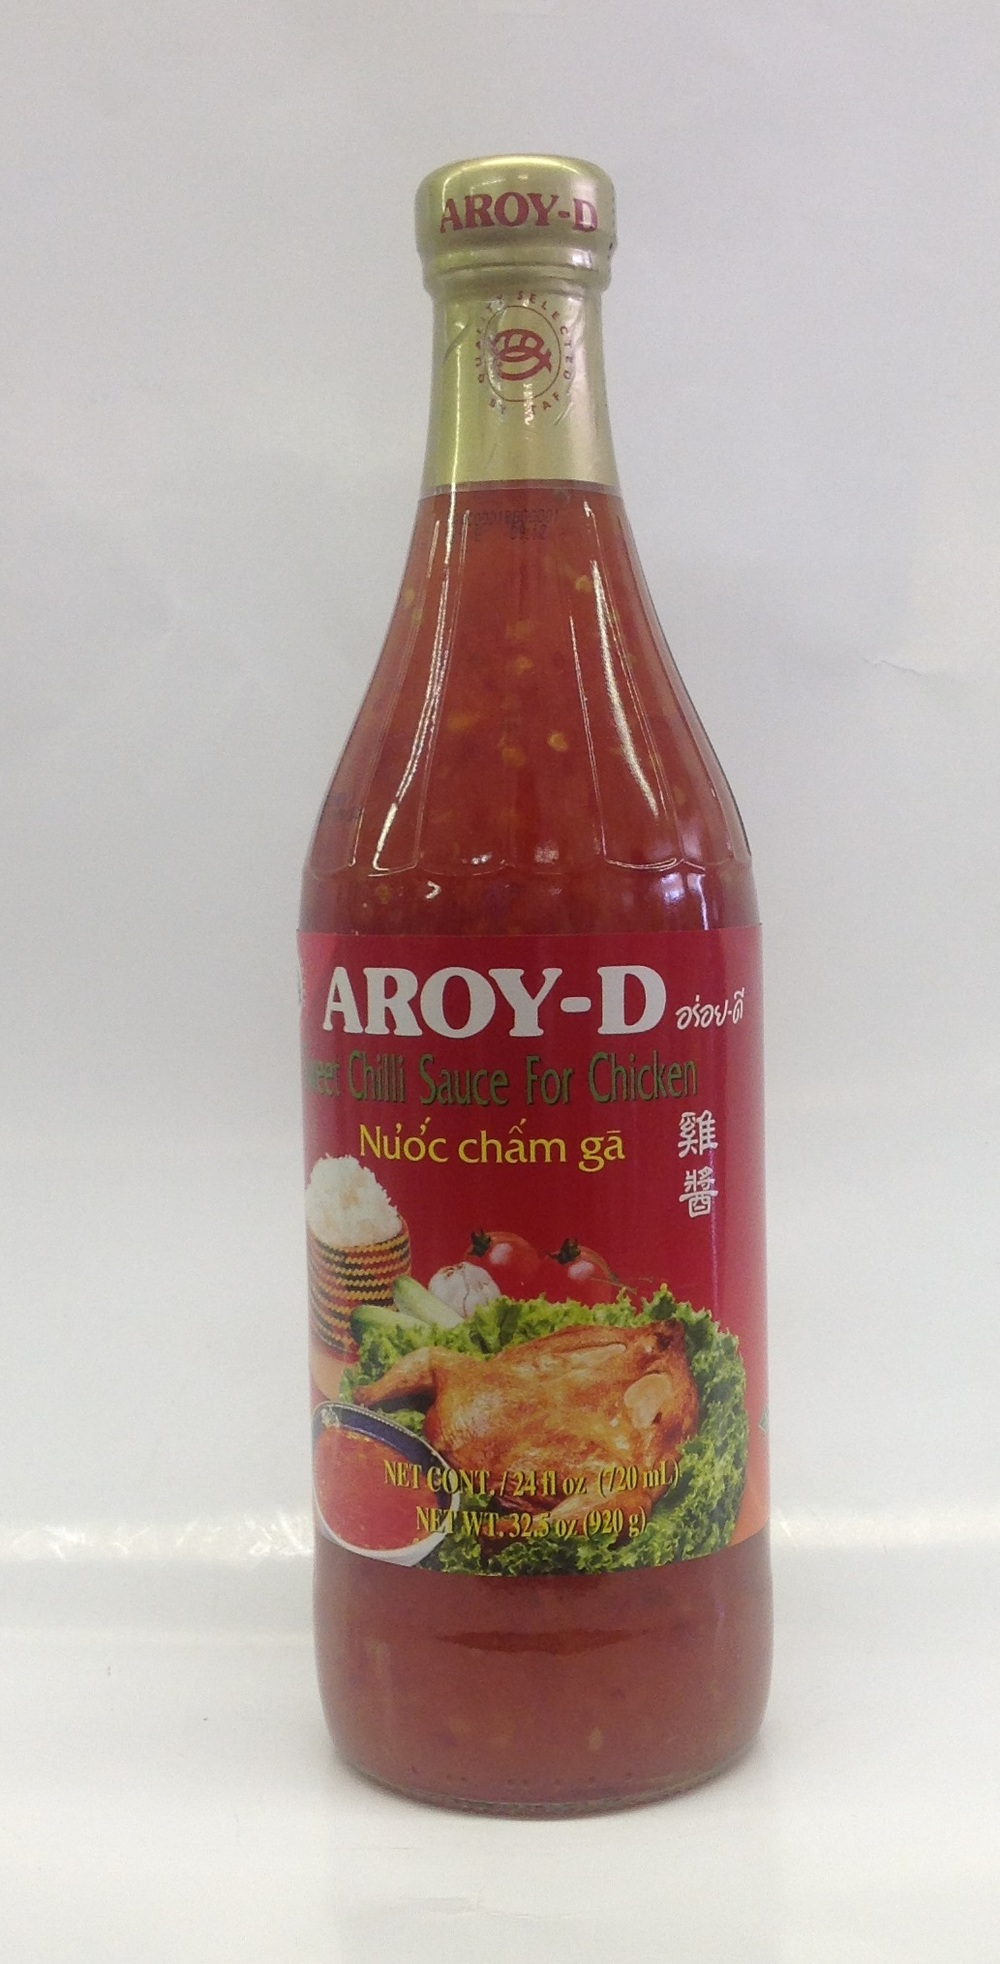 Sweet Chili Sauce for Chicken   Aroy-D   SC11300 12x24 oz